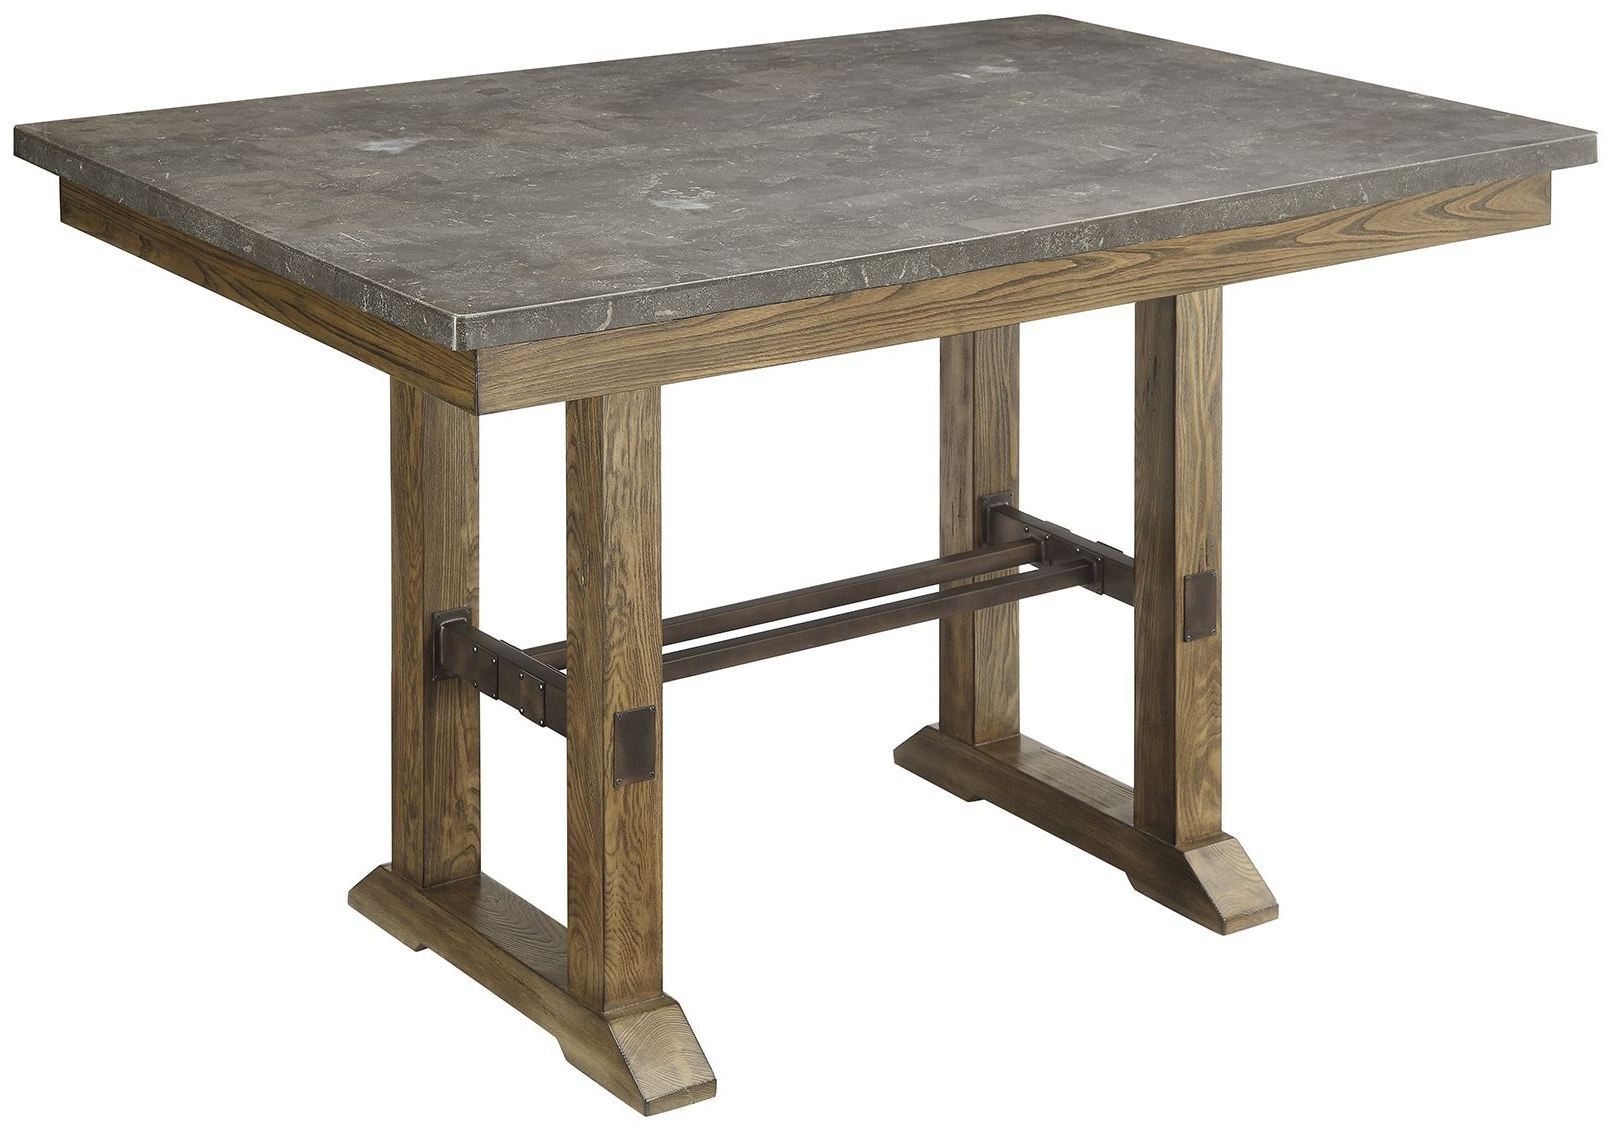 Willowbrook rustic ash counter height table 106988 for Table 6 of gstr 1